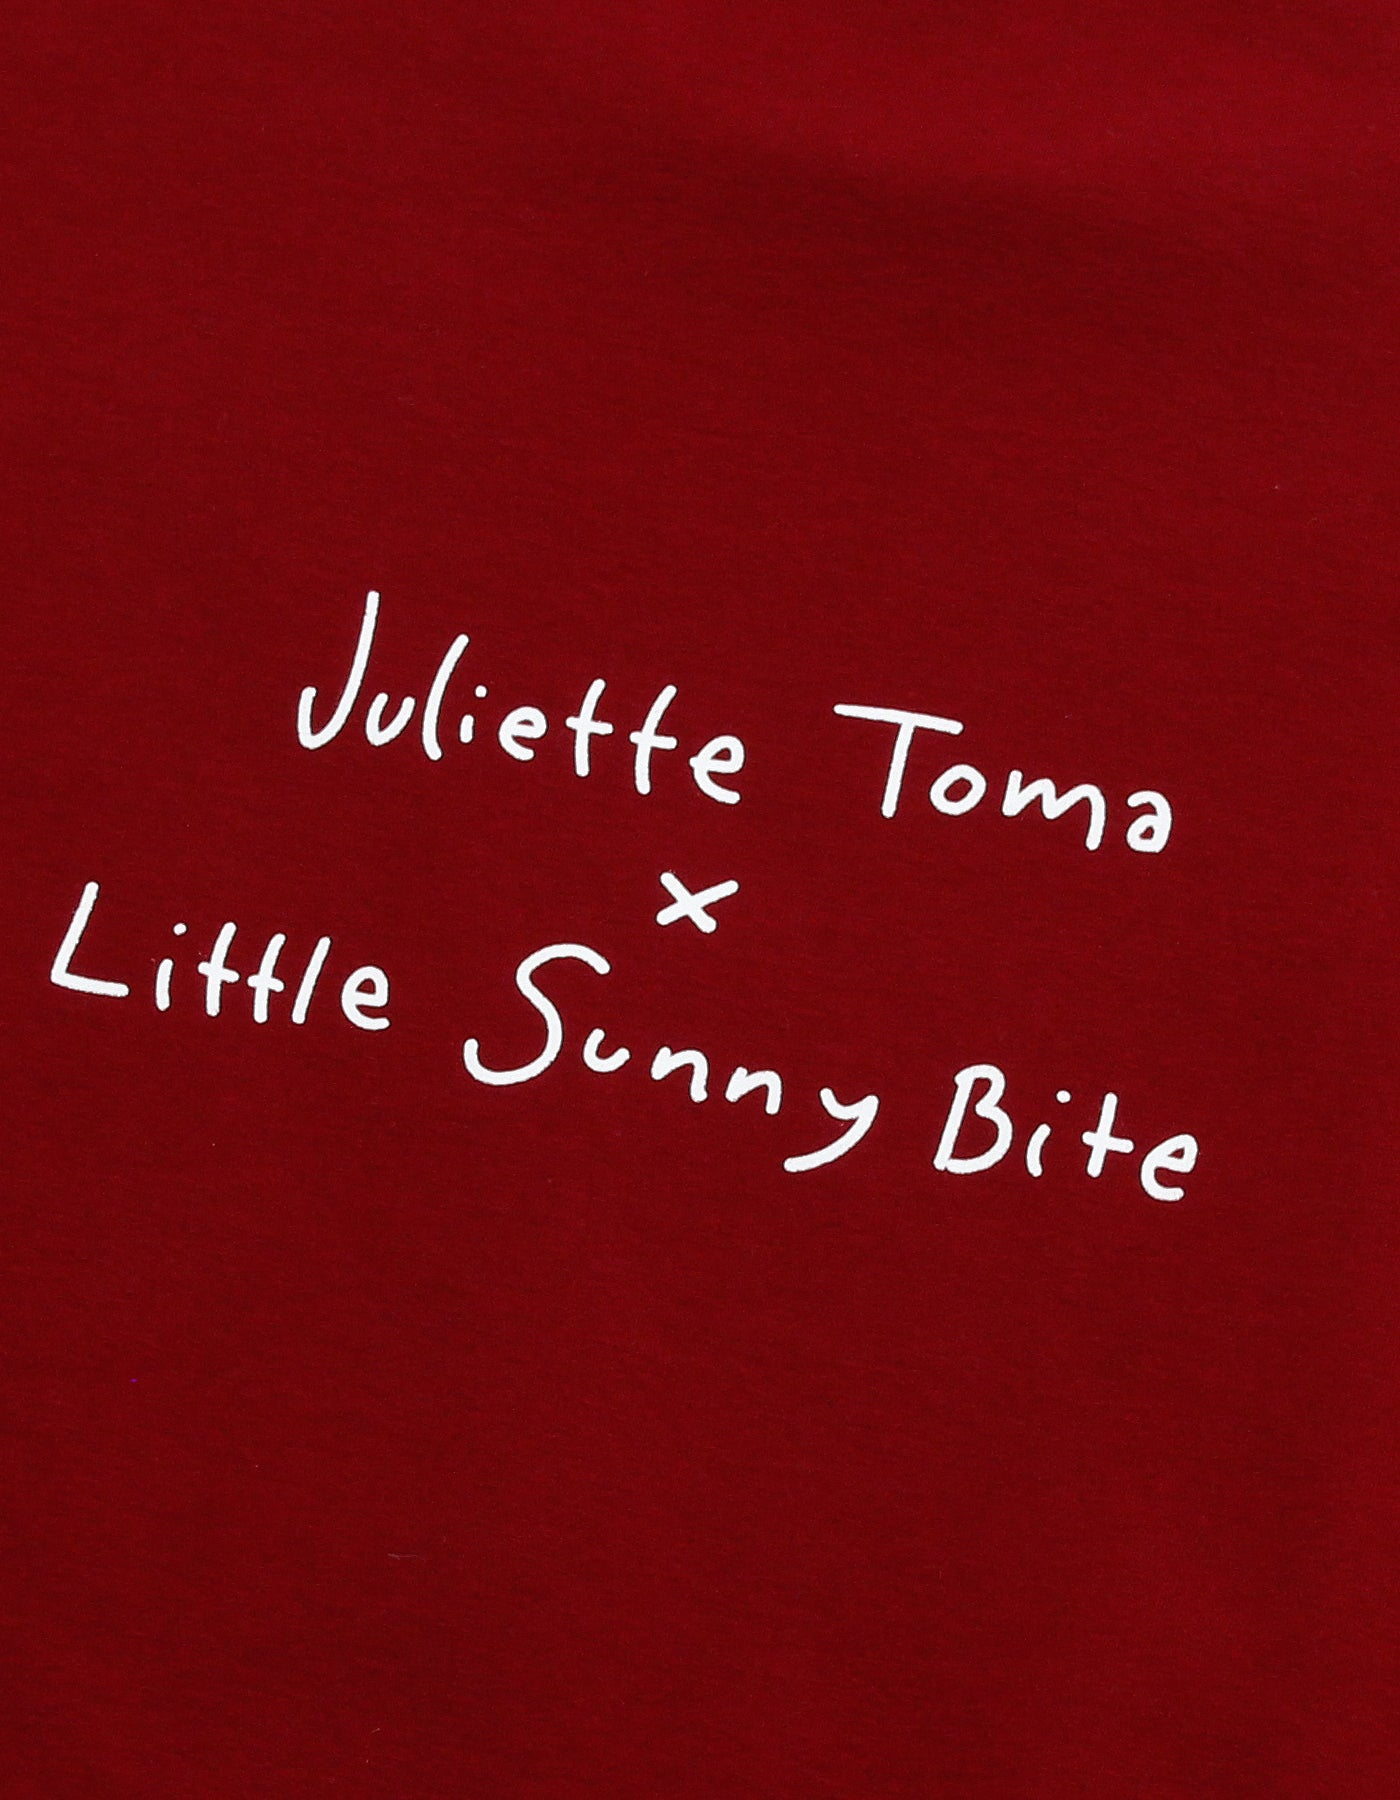 Very merry little sunny bite crew - favorite VHS sweat top / RED